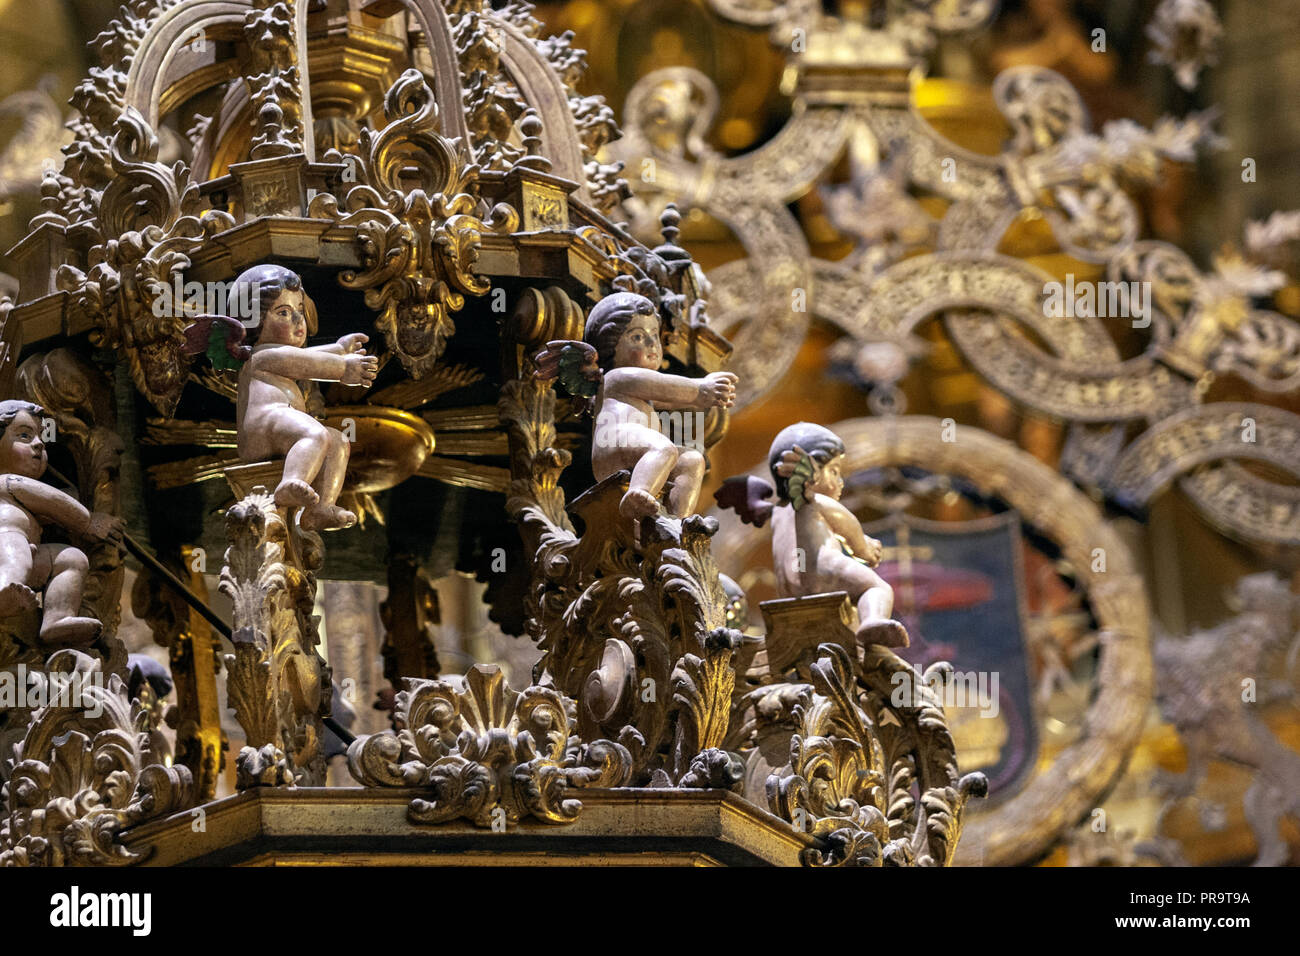 Wood carve figures in the Royal Monastery of Guadalupe, , Guadalupe, Caceres province, Extremadura, Spain - Stock Image